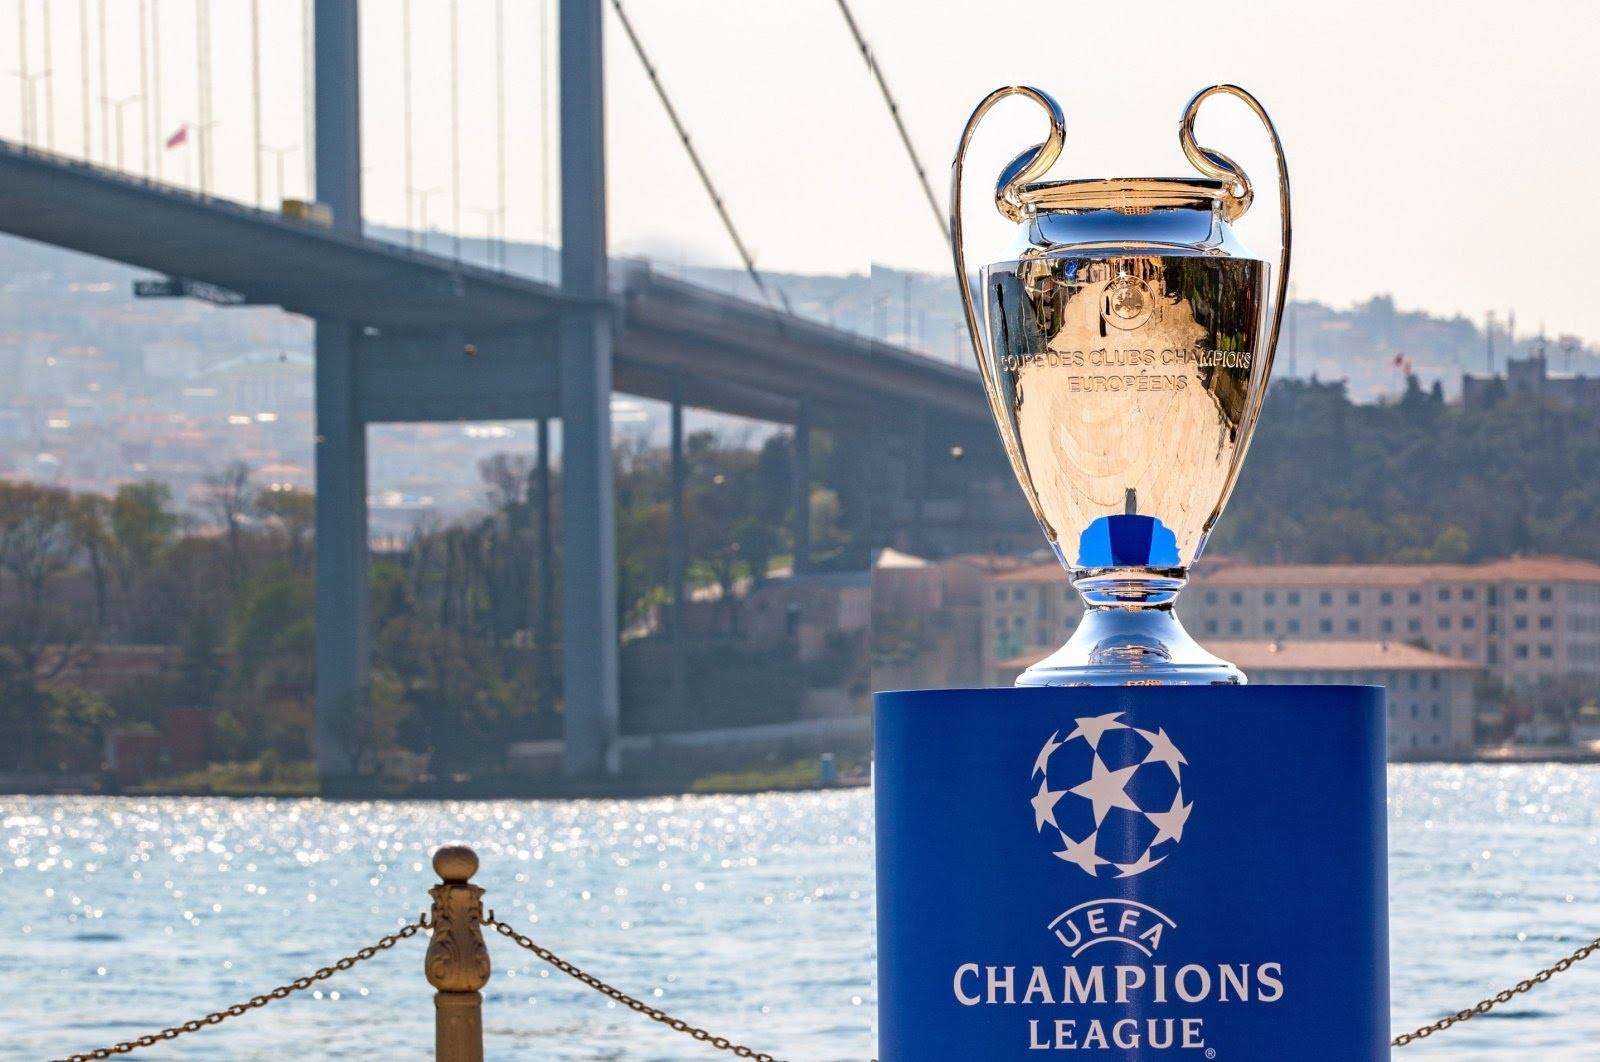 Istanbul to host 2023 UEFA Champions League final